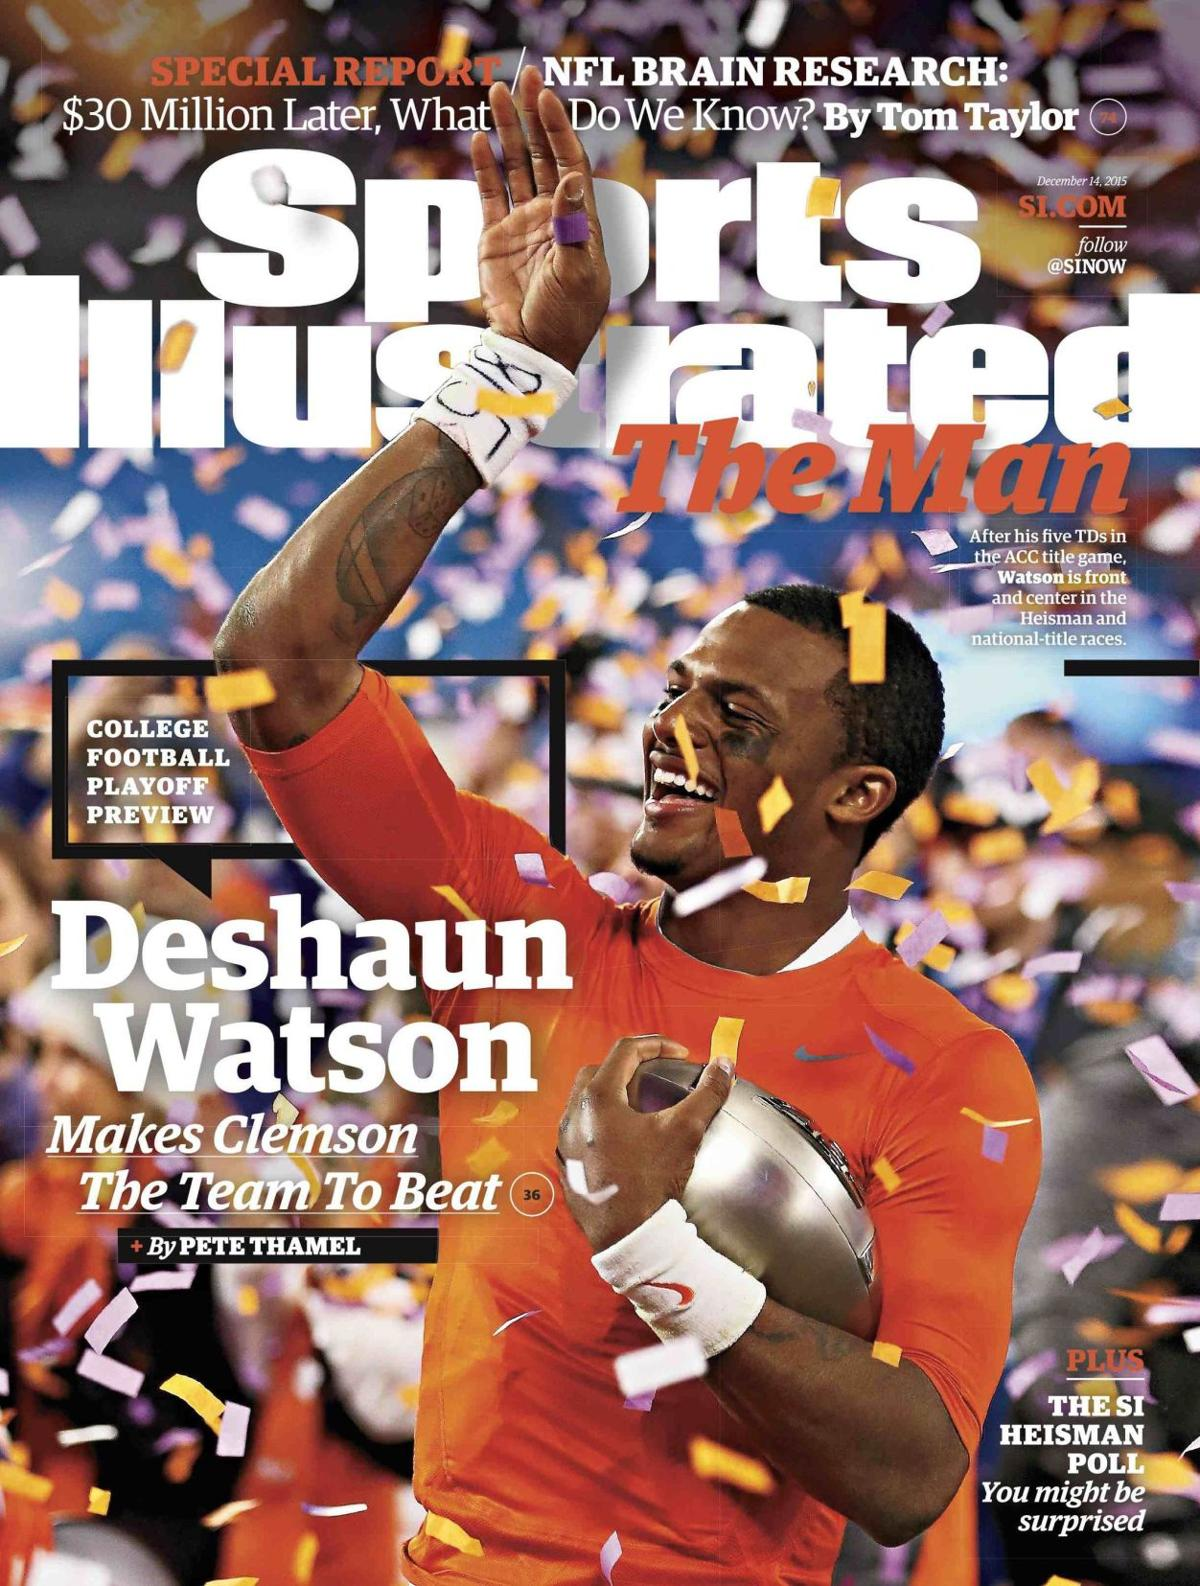 Watson on the cover of Sports Illustrated